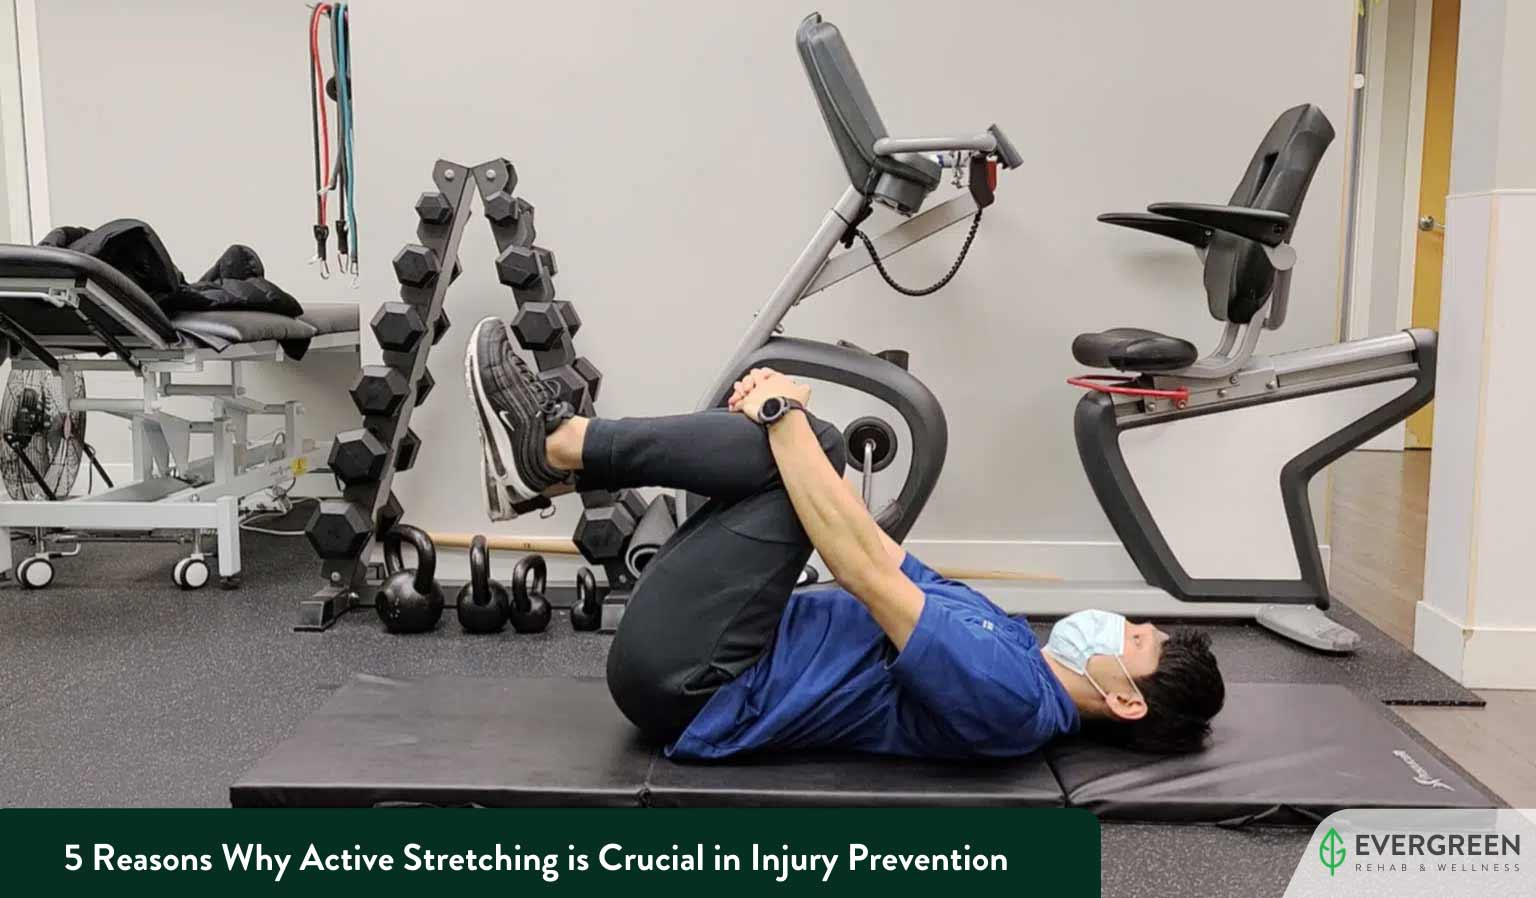 5 Reasons Why Active Stretching is Crucial in Injury Prevention